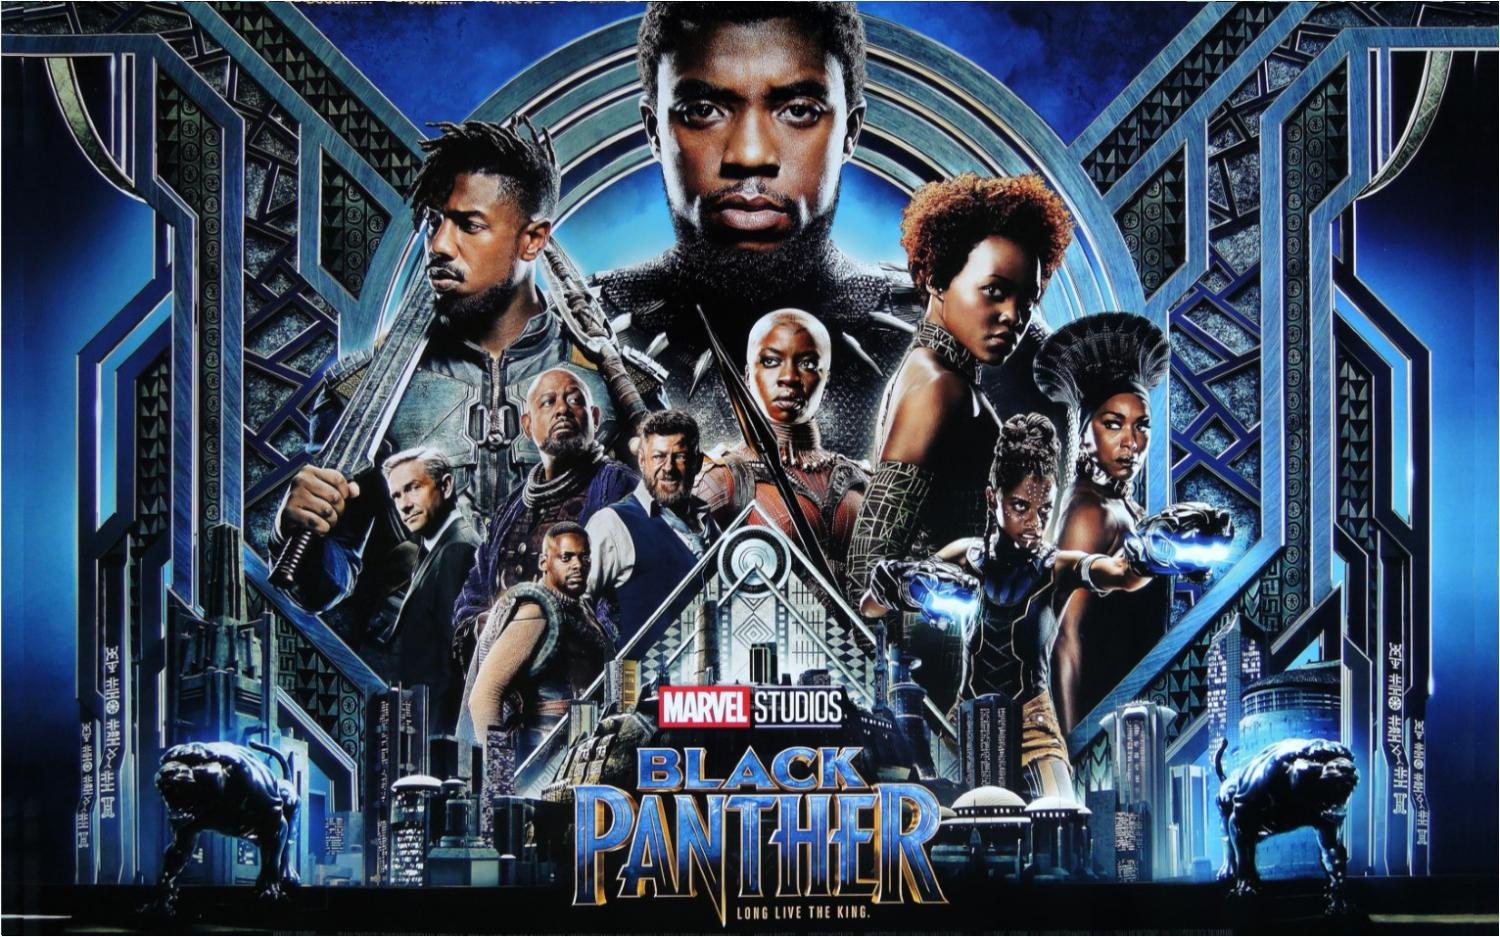 The first released poster of Black Panther